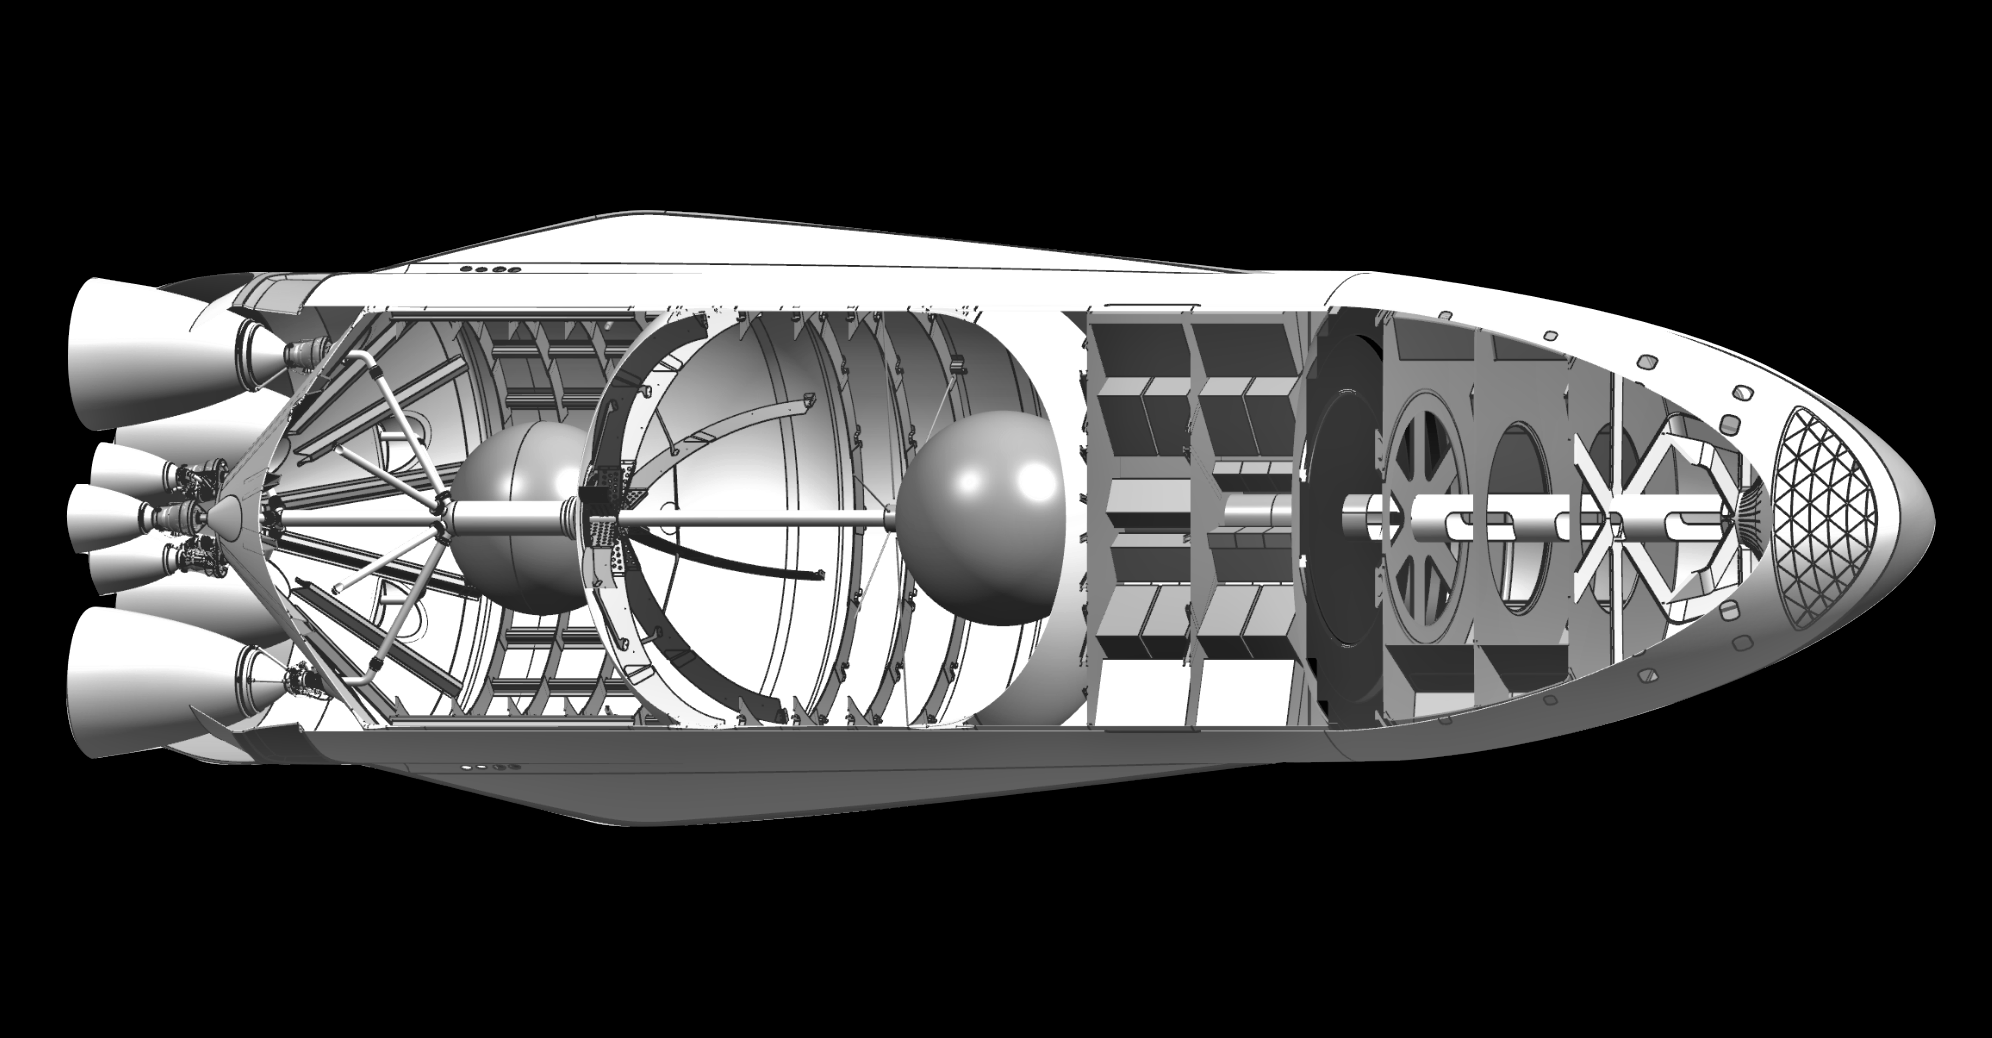 SpaceX's Starship Raptor Vacuum engine plans laid out by CEO Elon Musk